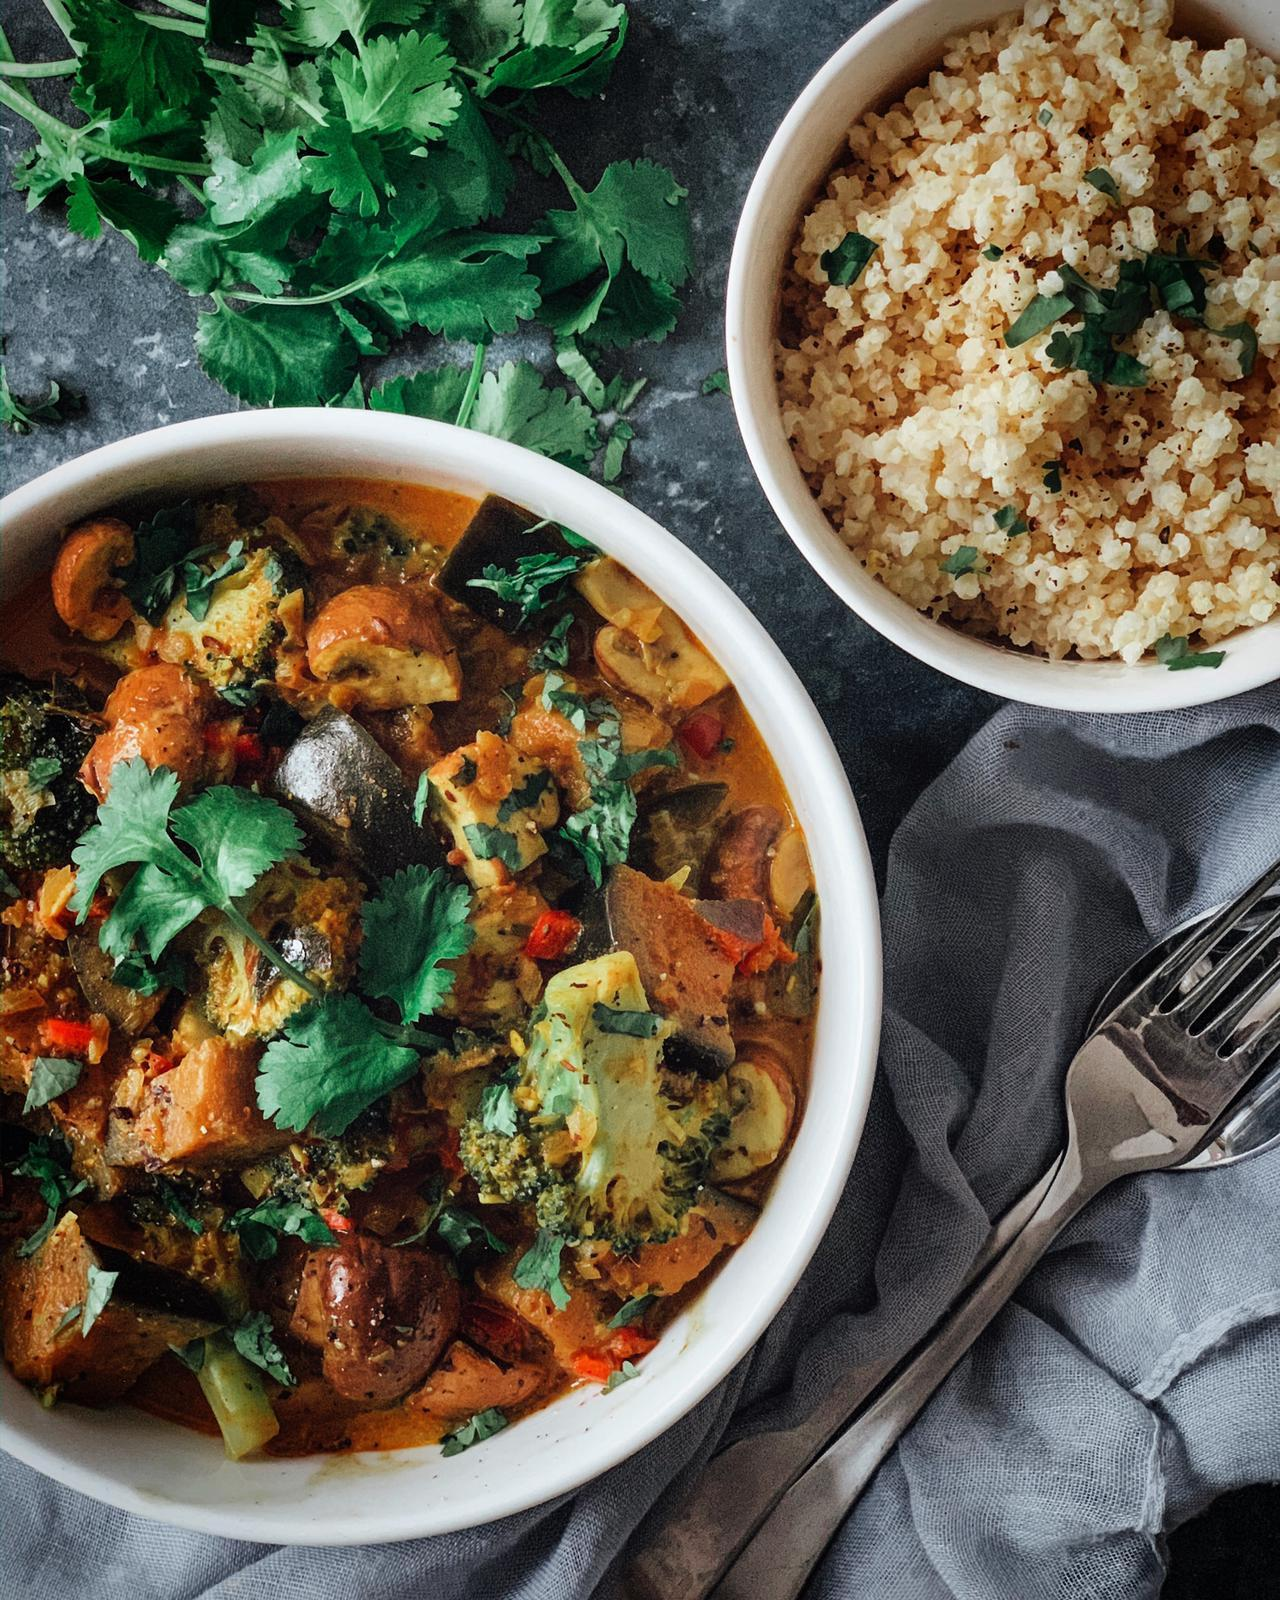 Aubergine, Mushroom & Broccoli Curry with Millet